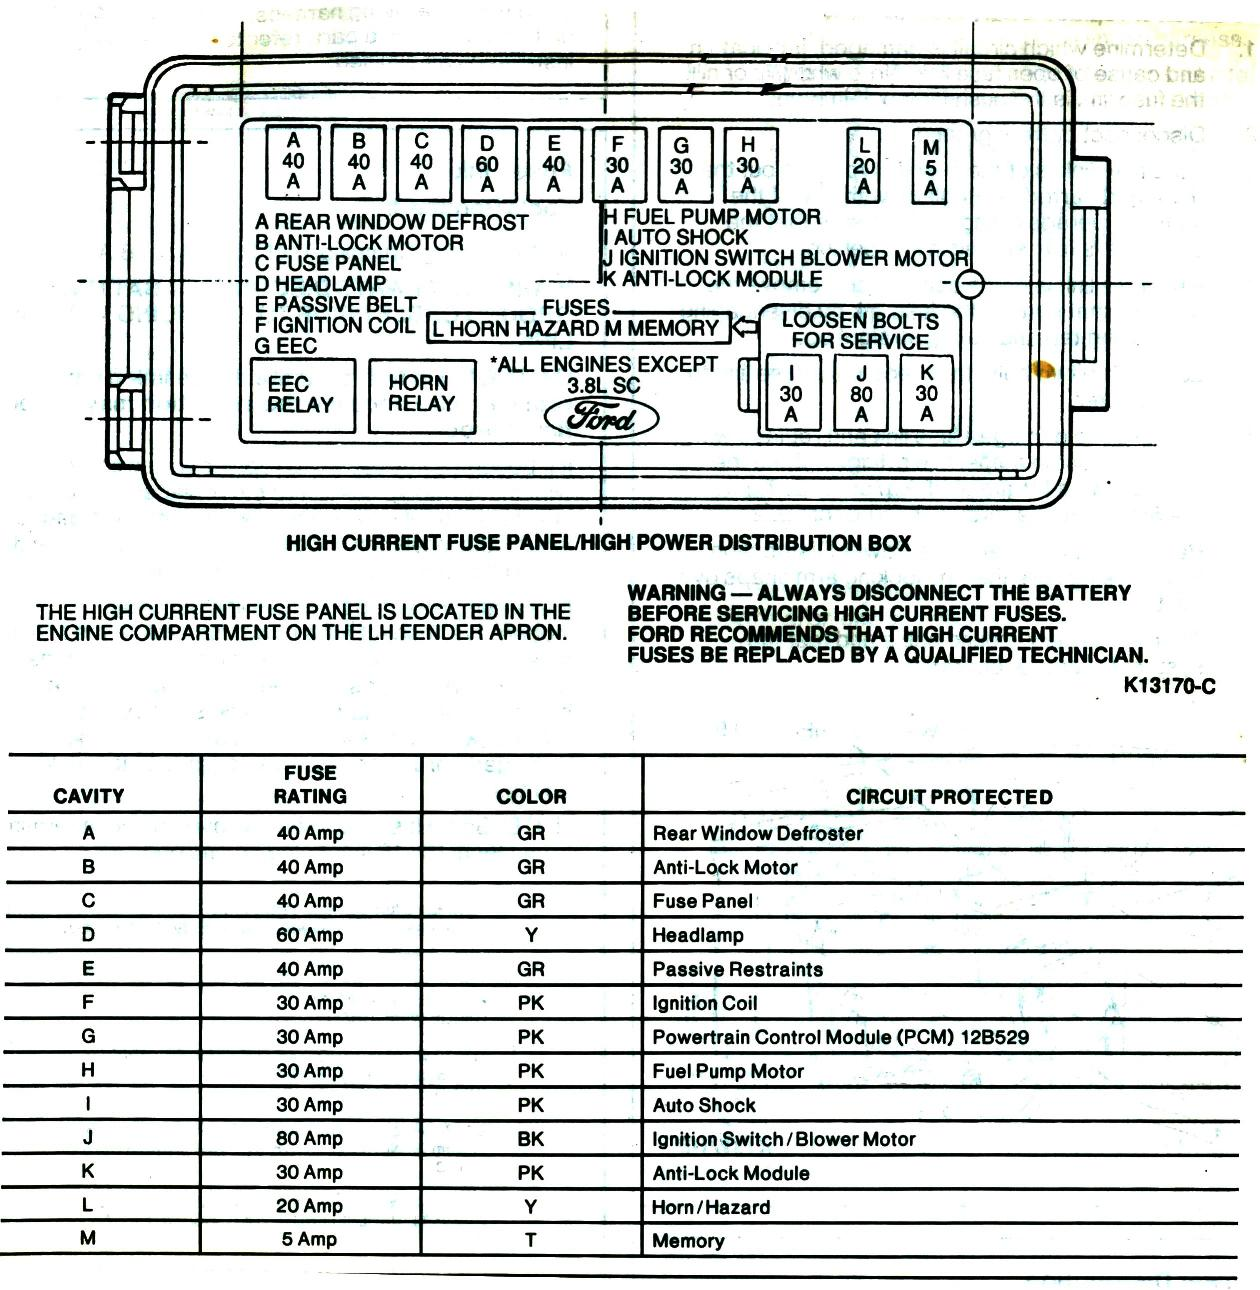 Exterior Fuse Box Diagram For Ford Taurus 1995 46 Wiring 96 Dist Under Dash At Highcare